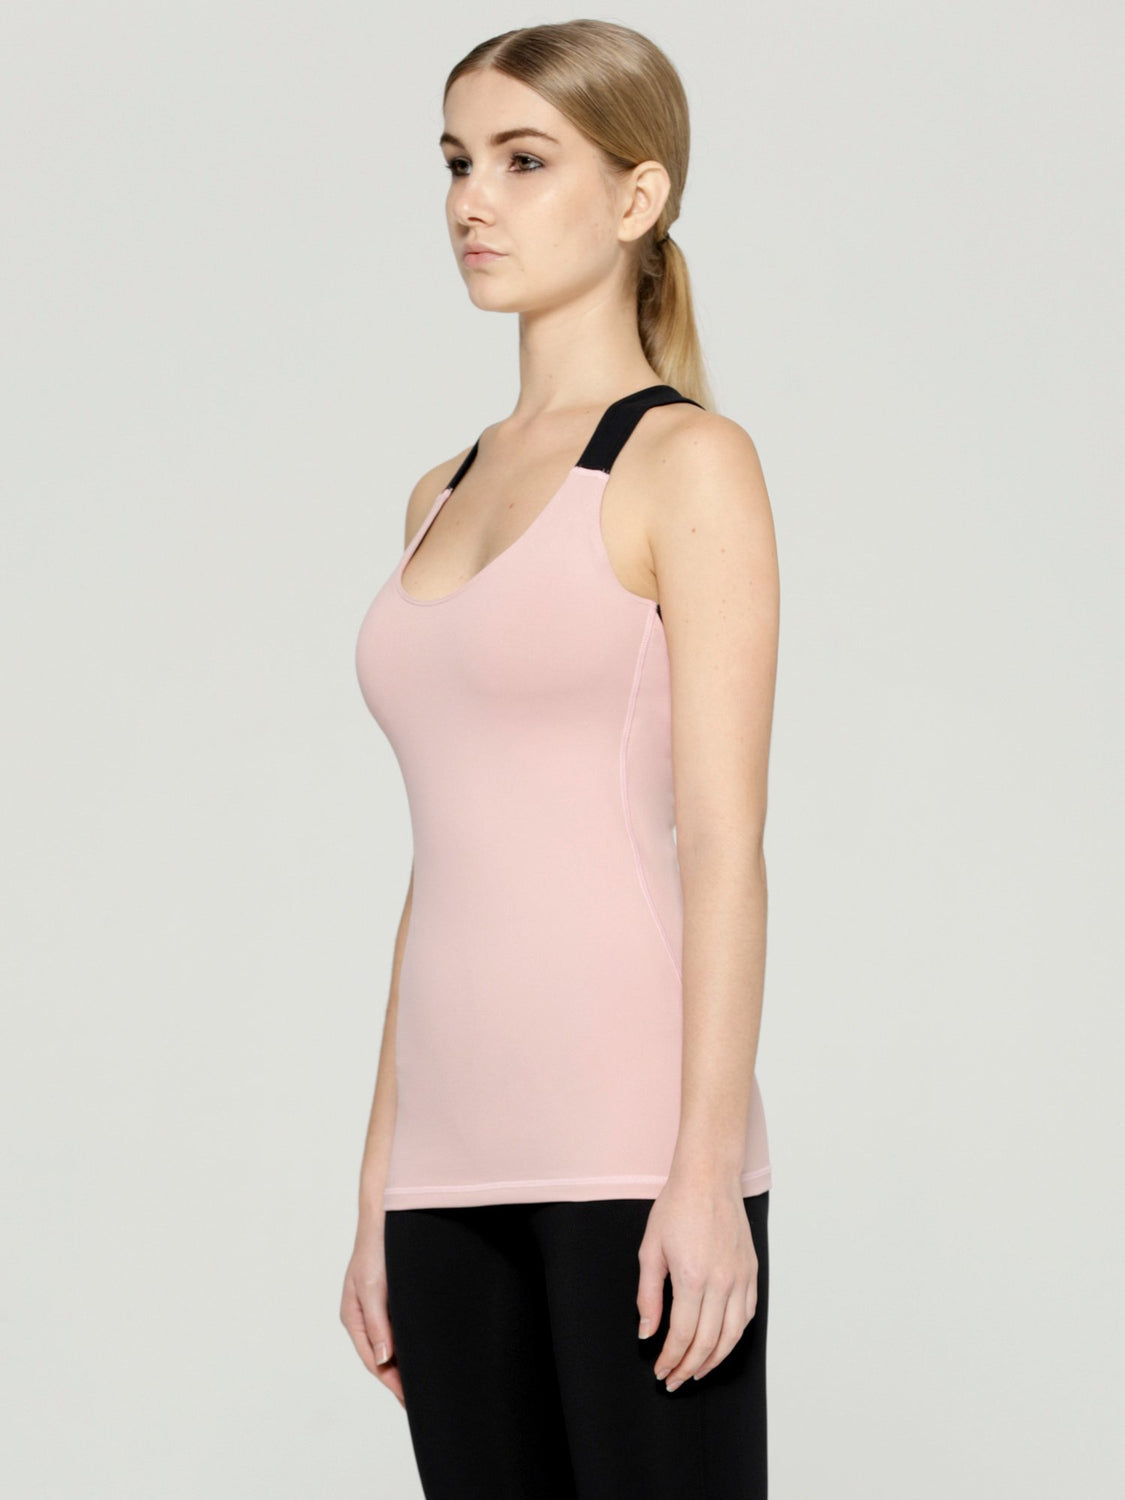 PROJECTION TANK 2.0, BLUSH/BLACK